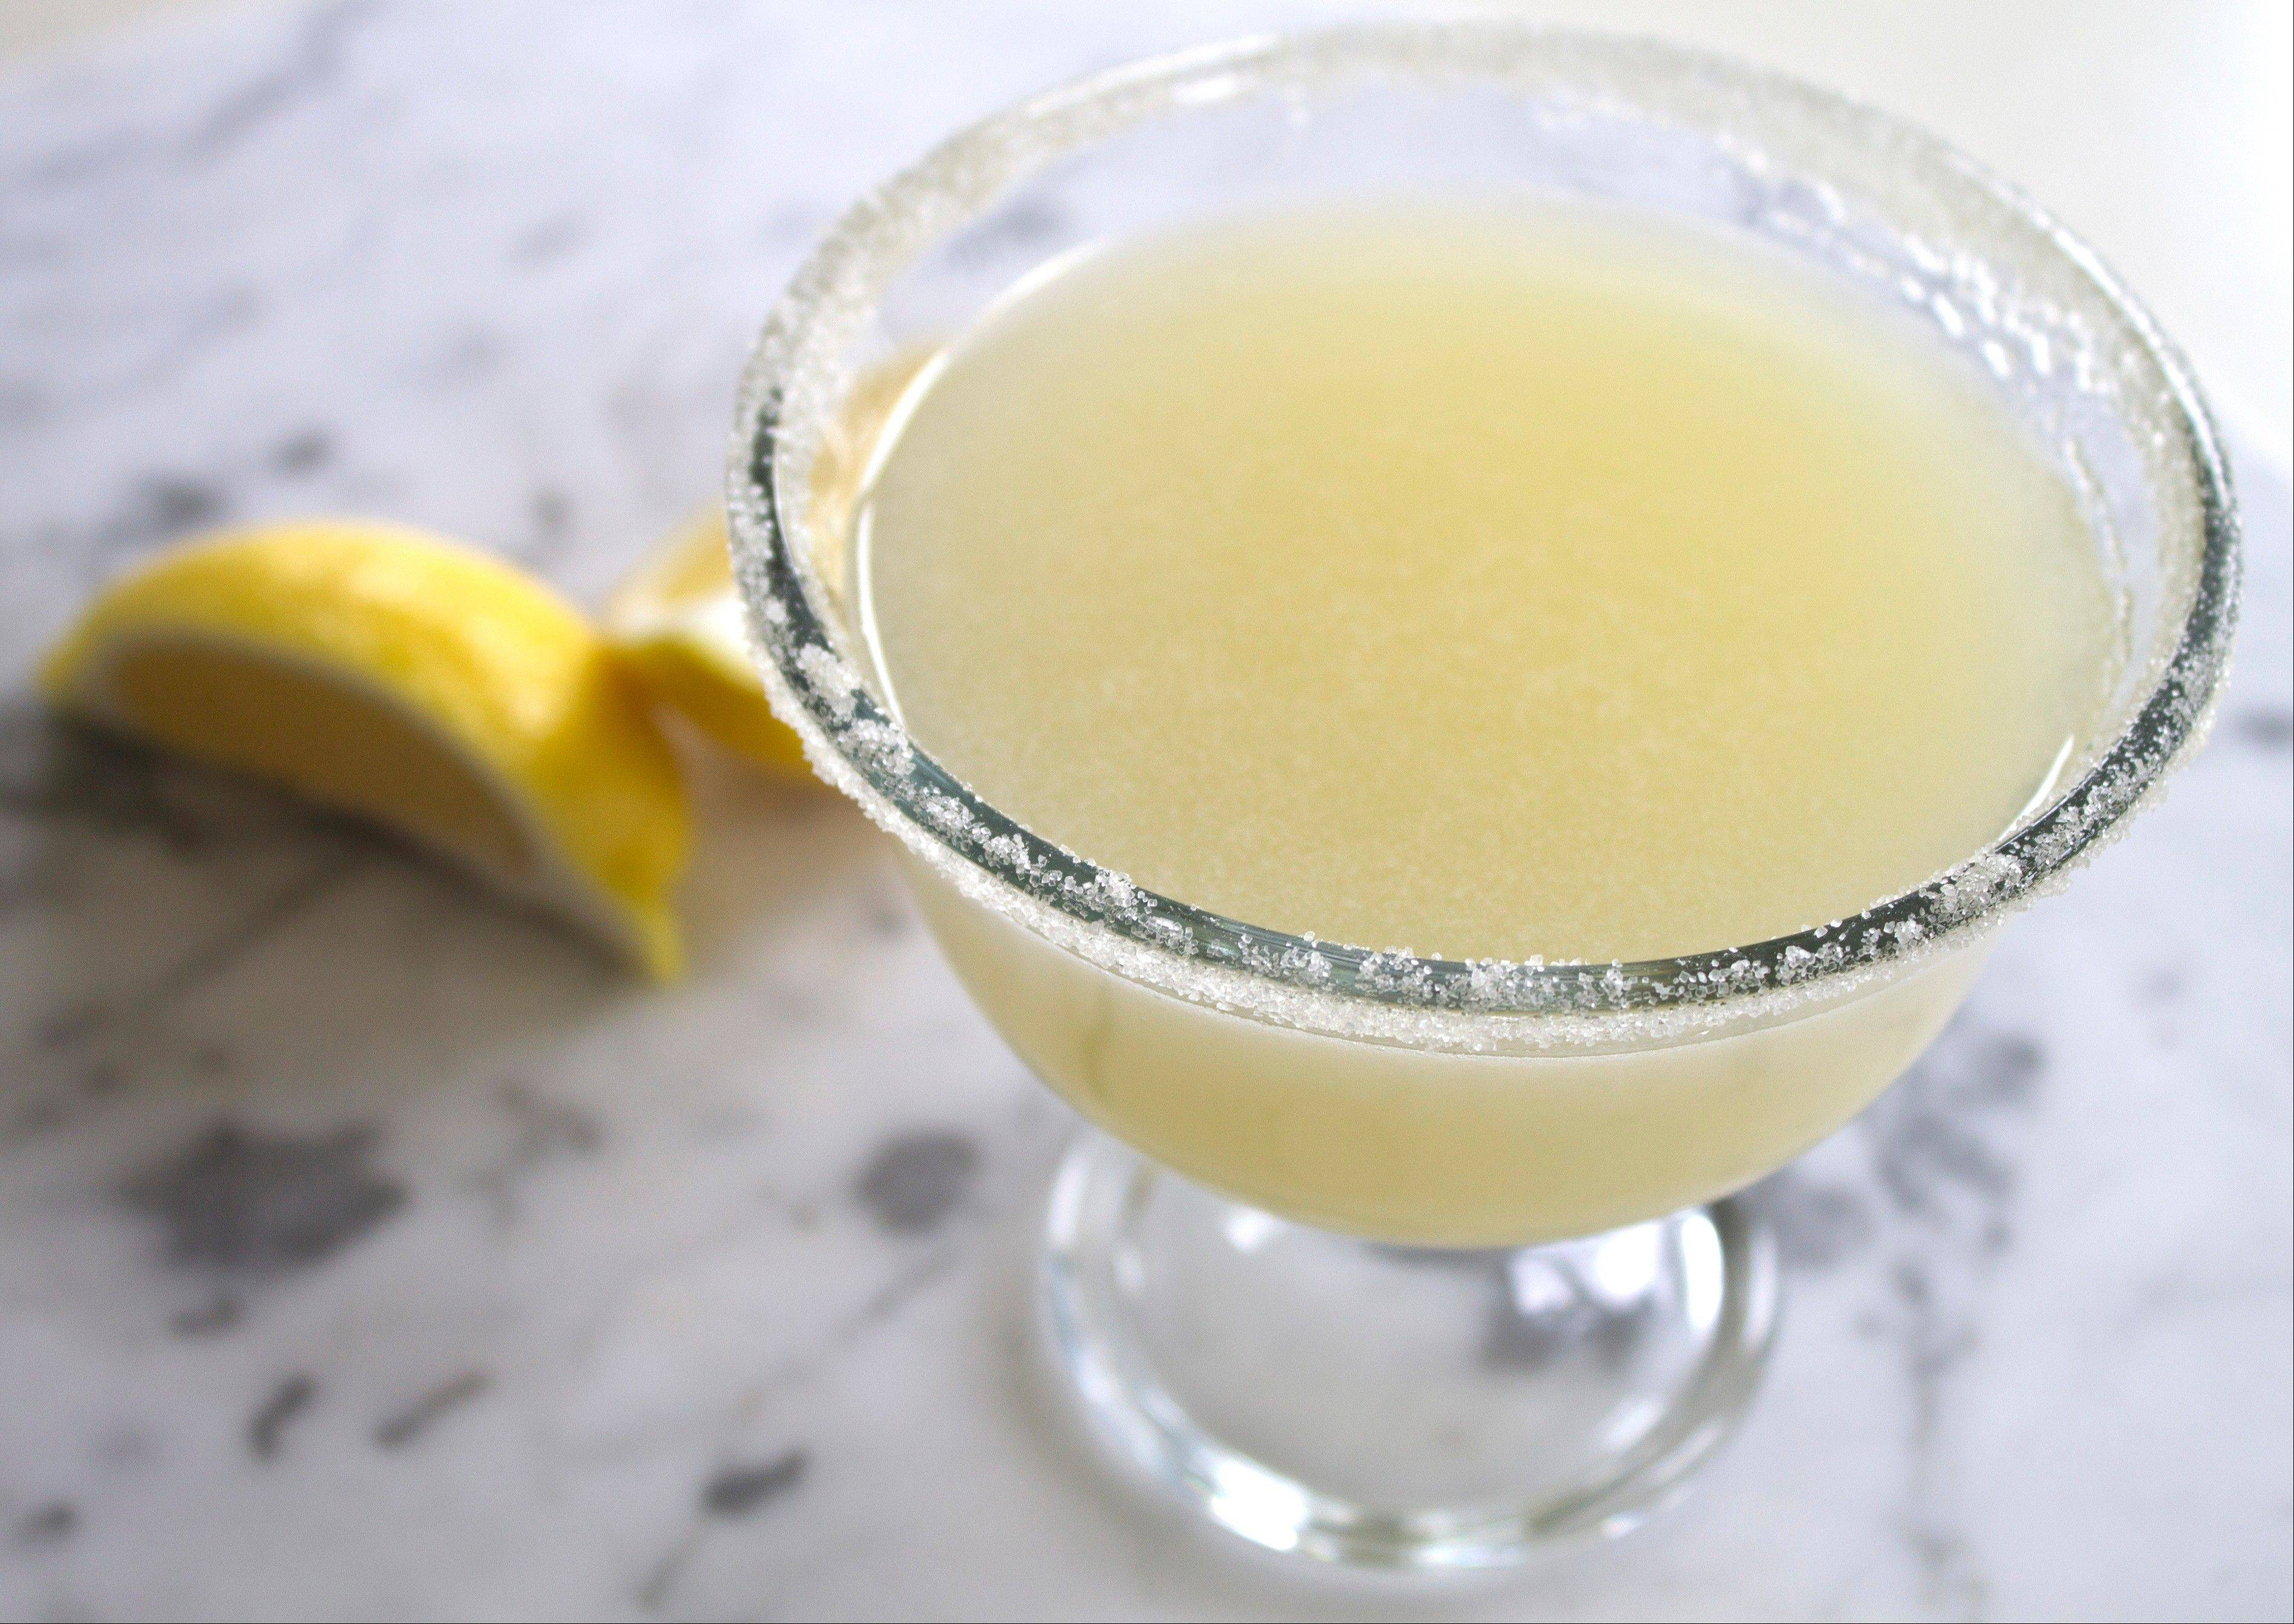 Juice from broiled lemons adds unique flavor notes to a margarita.